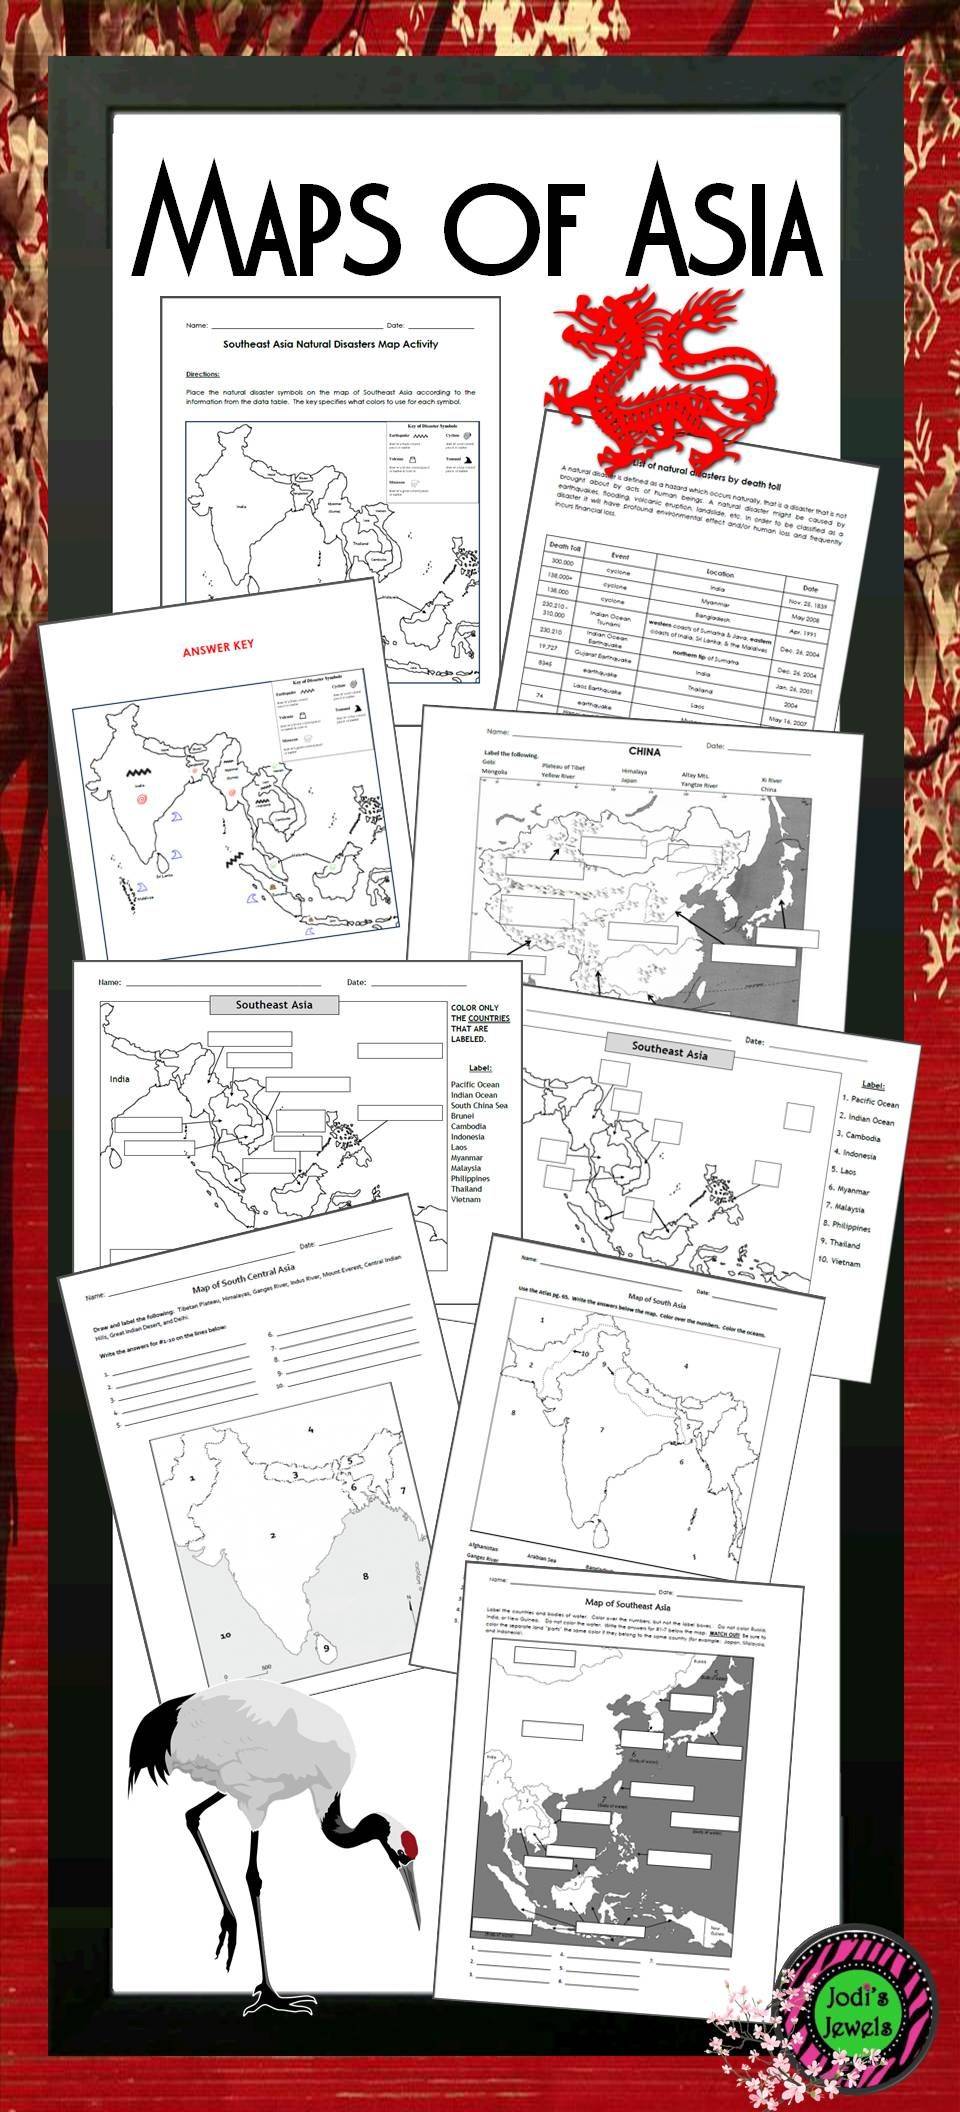 Maps of Asia for Middle School are color and label maps